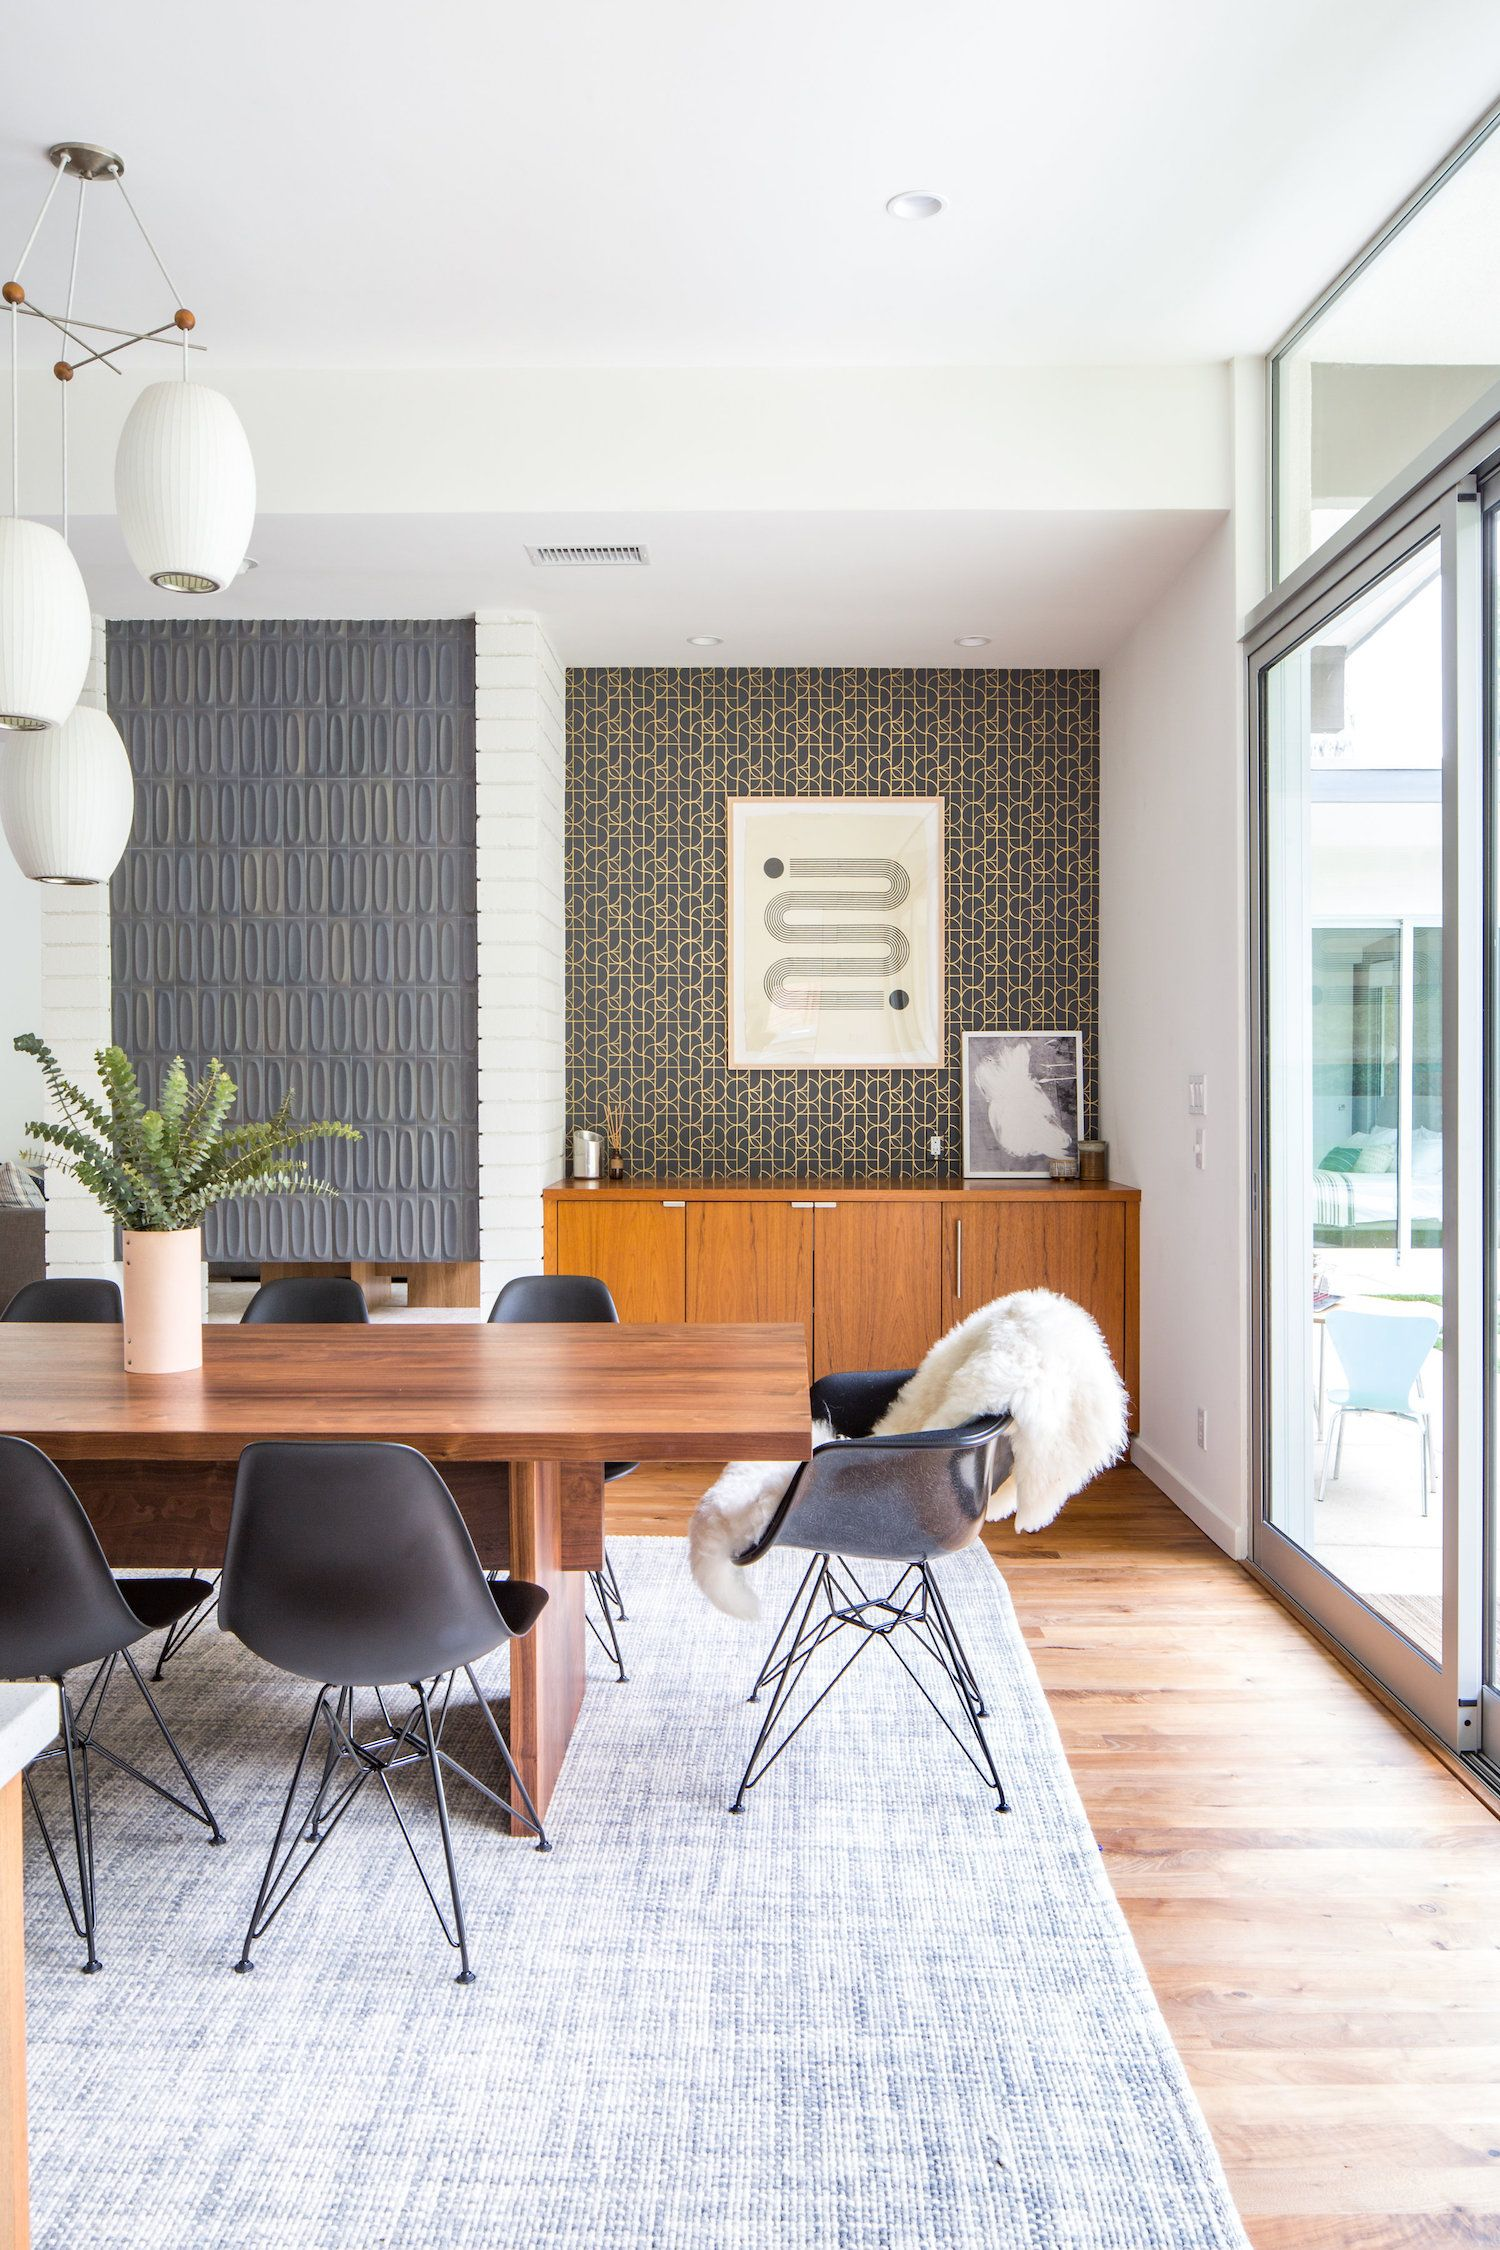 An Organic Midcentury Modern Dining Room By La Designer Natalie Myers Dwellingcollective Mode Mcm Dining Room Modern Dining Room Dining Room Design Modern